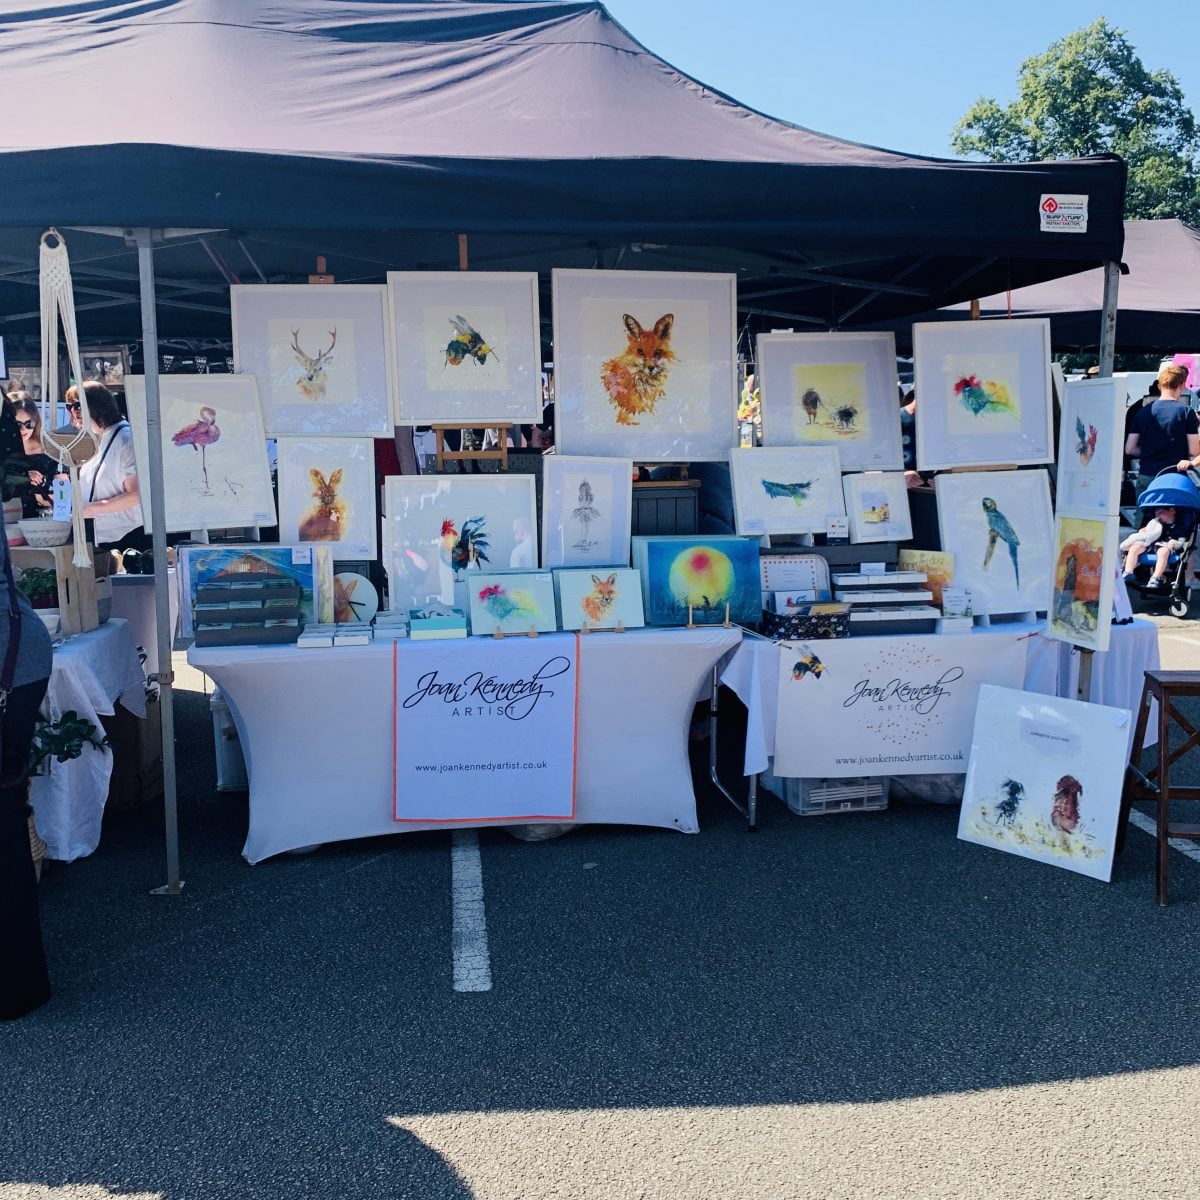 Didsbury Makers Market